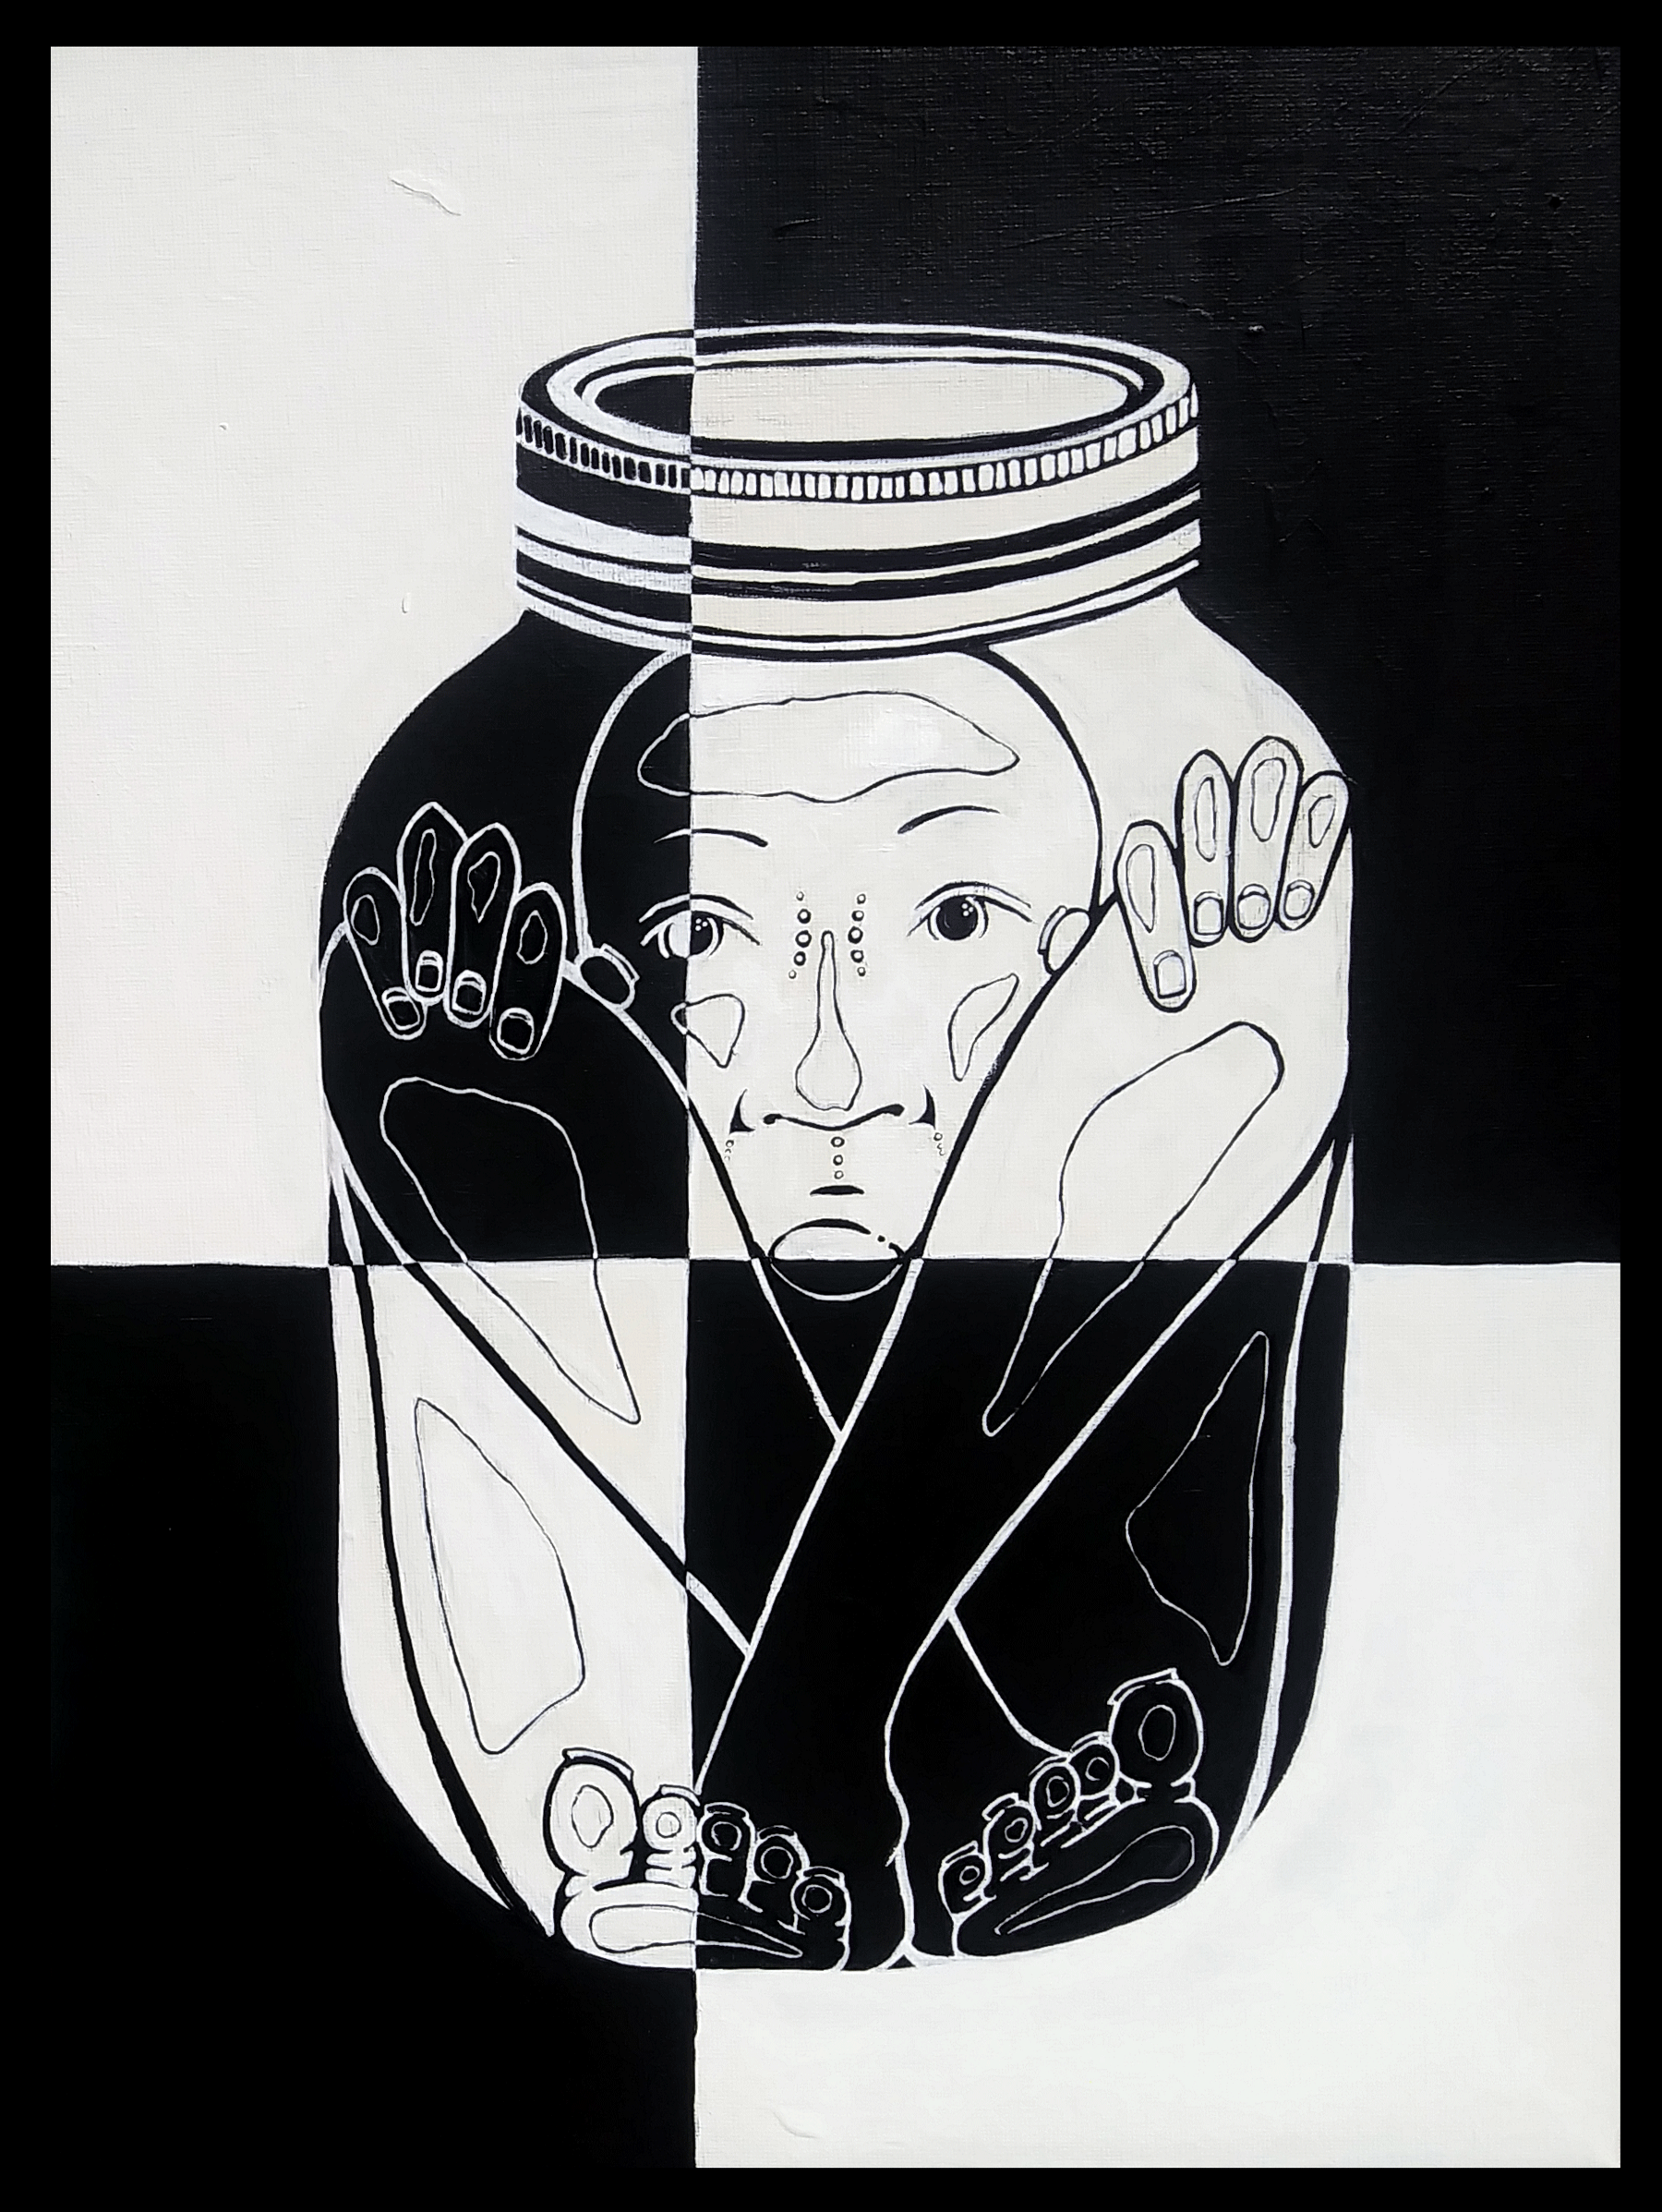 Painting of a human trapped in a jar